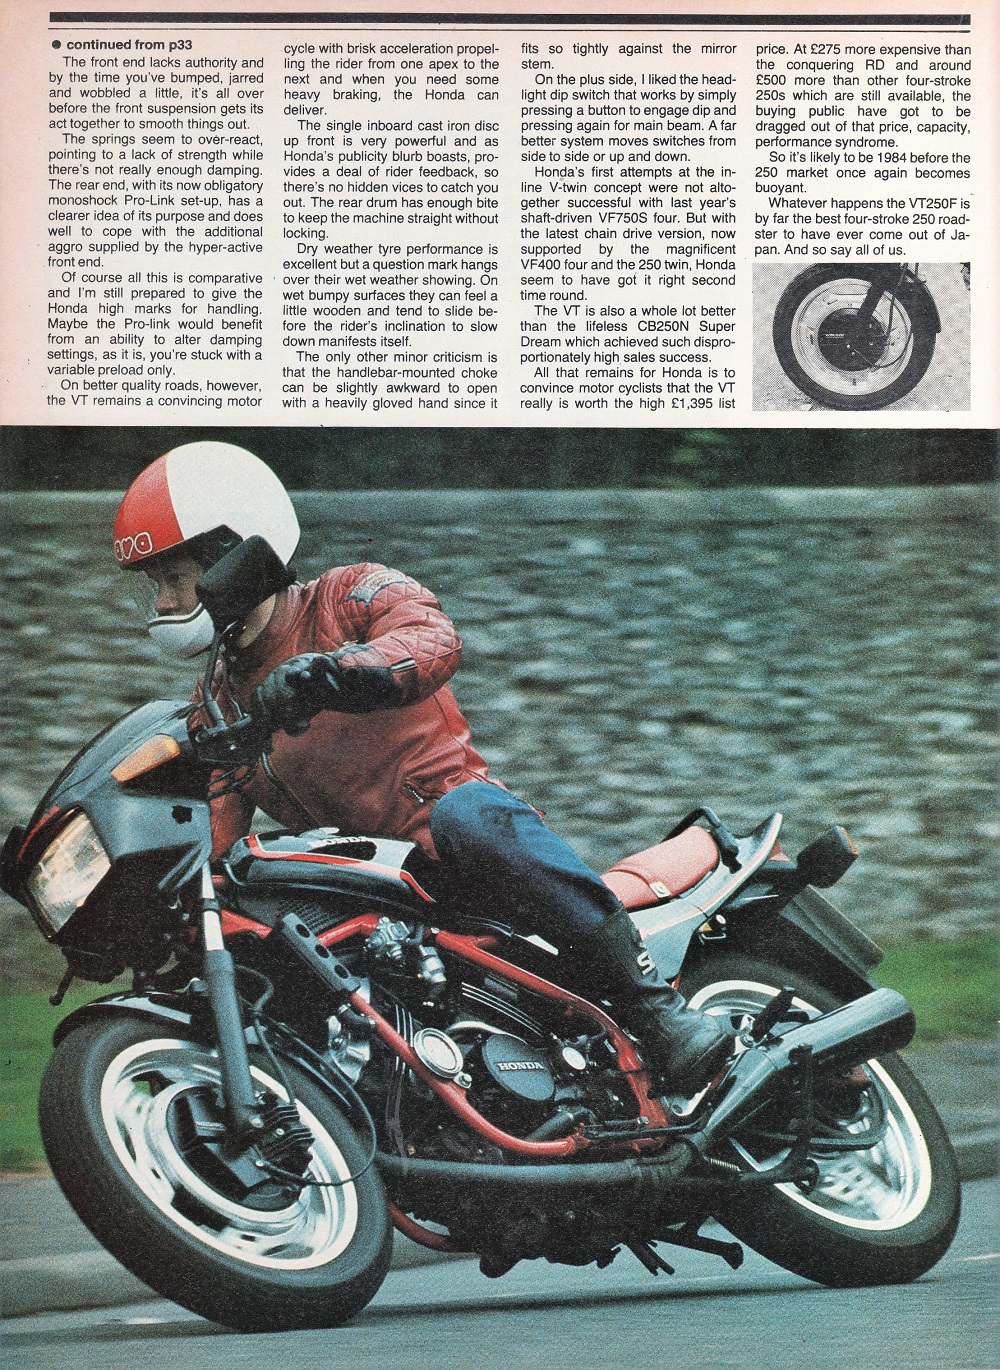 1983 Honda VT250F road test.4.jpg